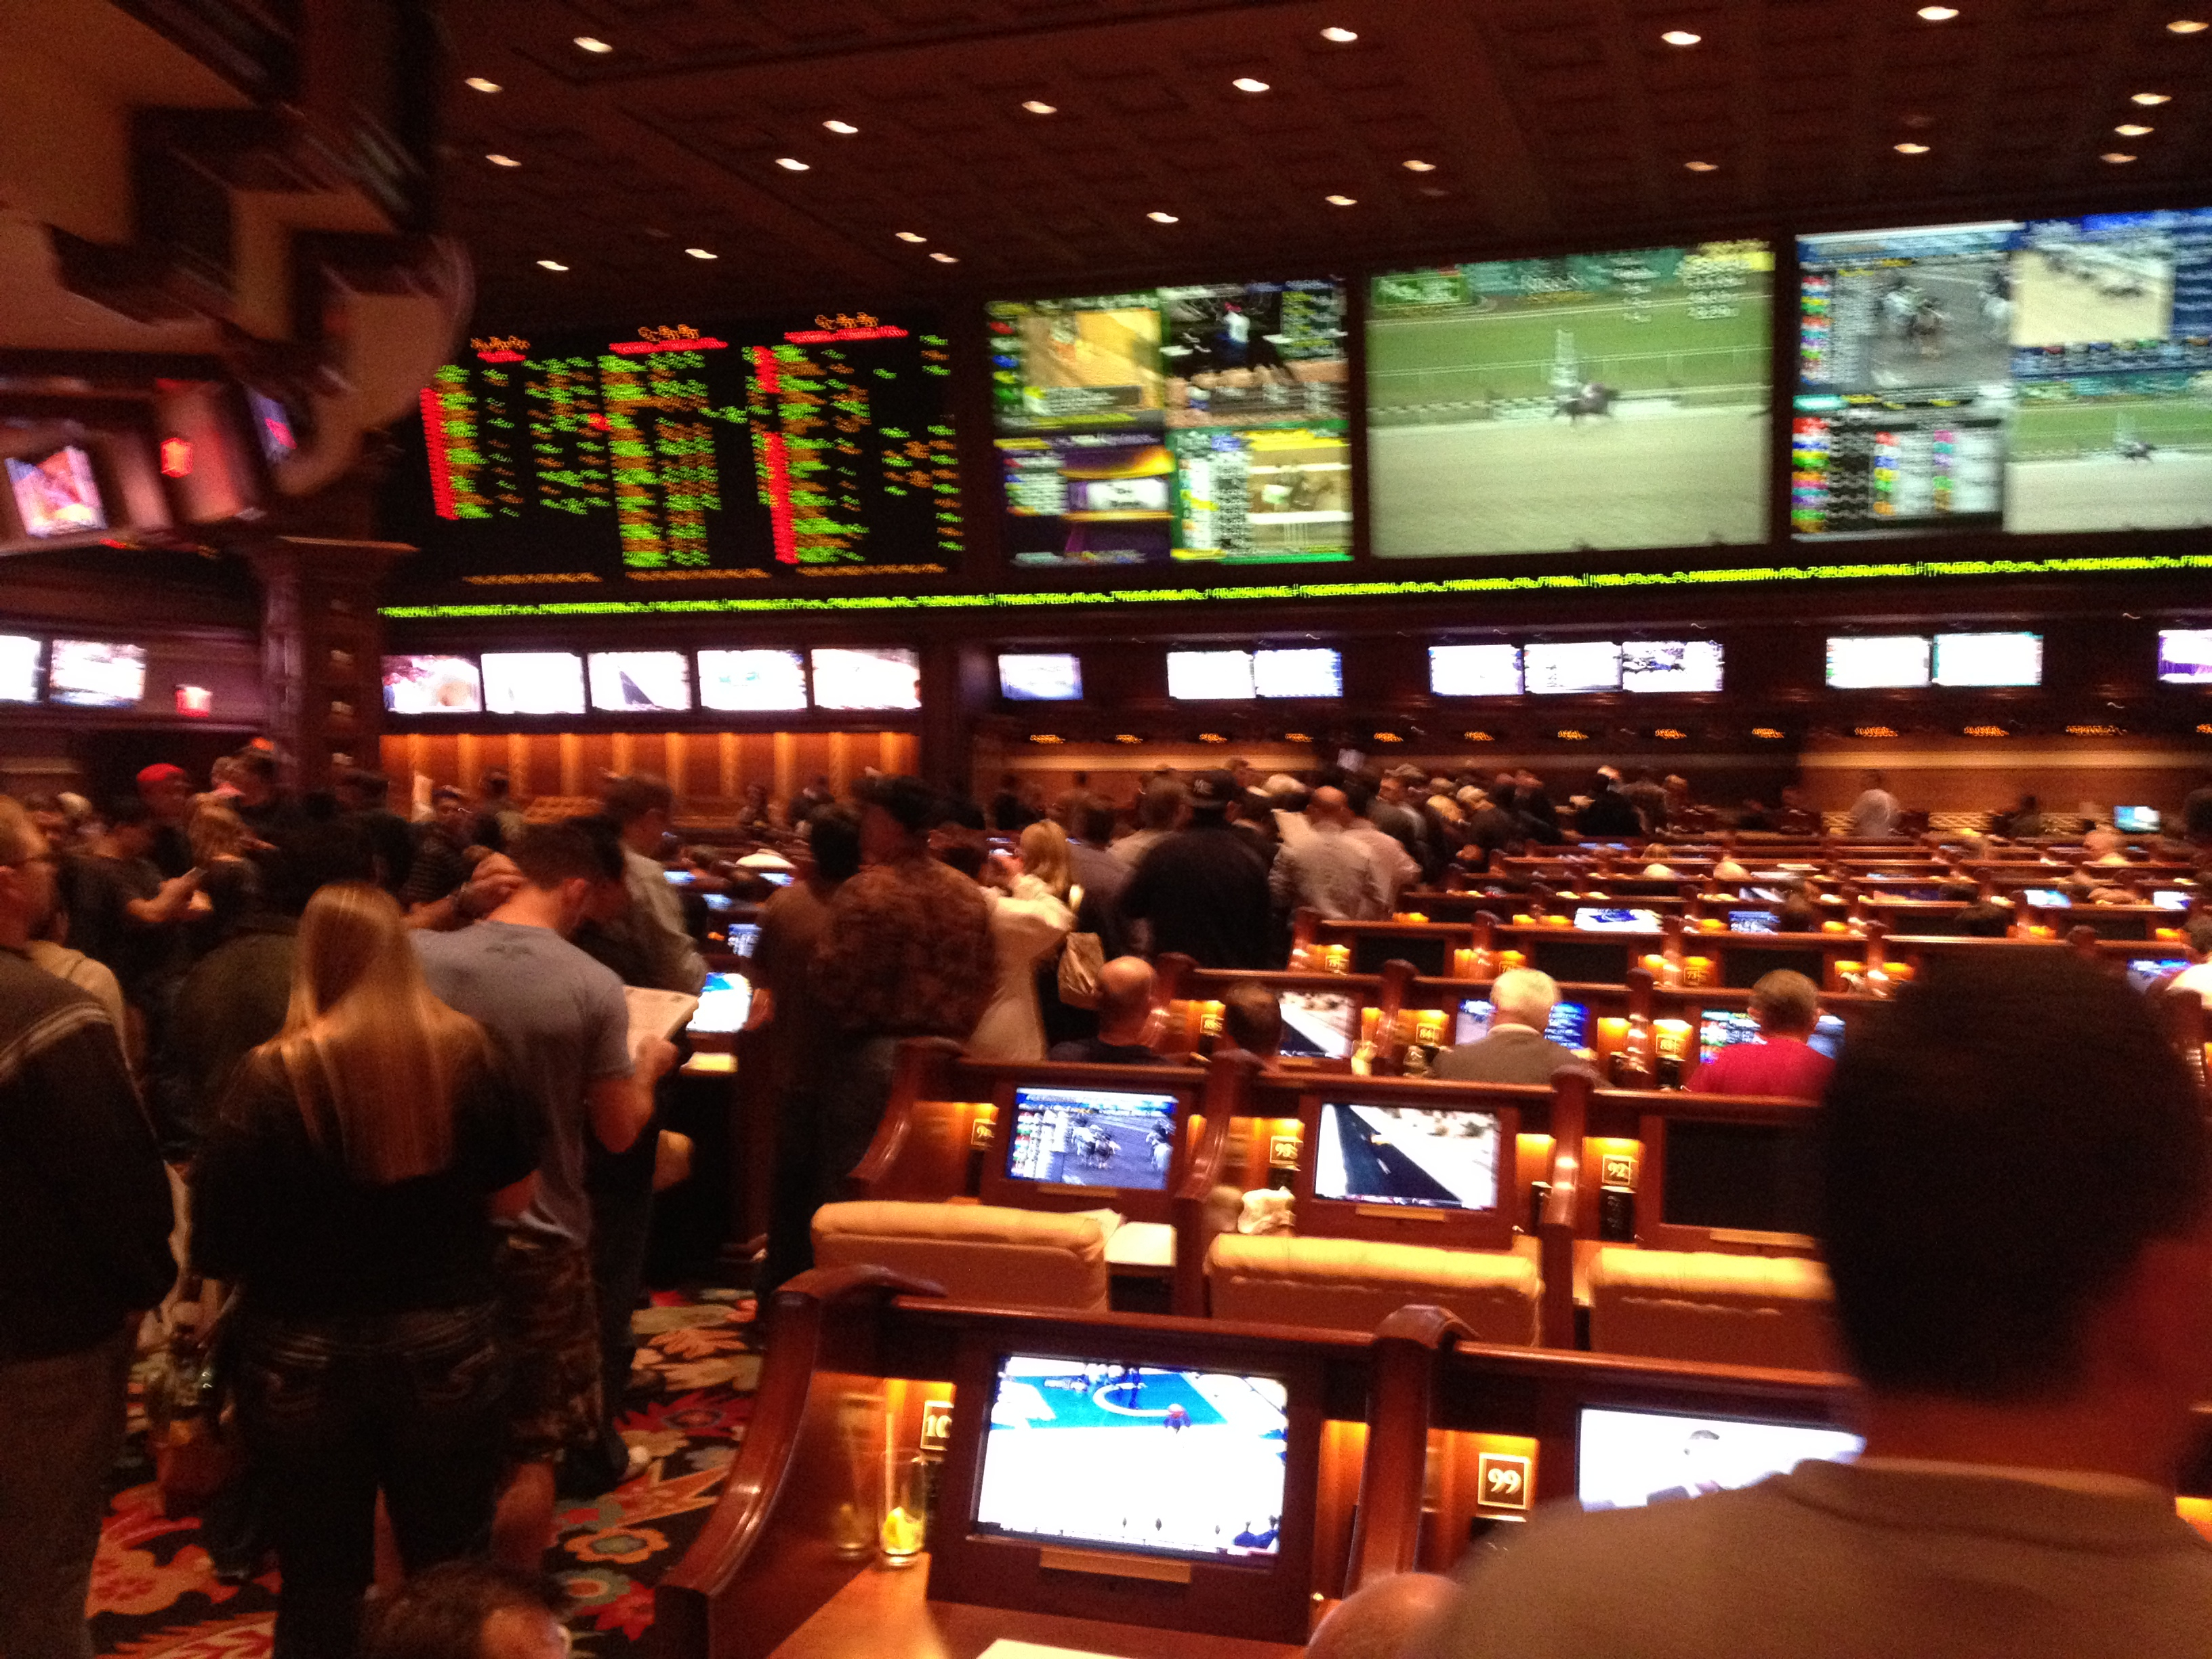 Merveilleux Las Vegas Sports Books U2013 Top ...